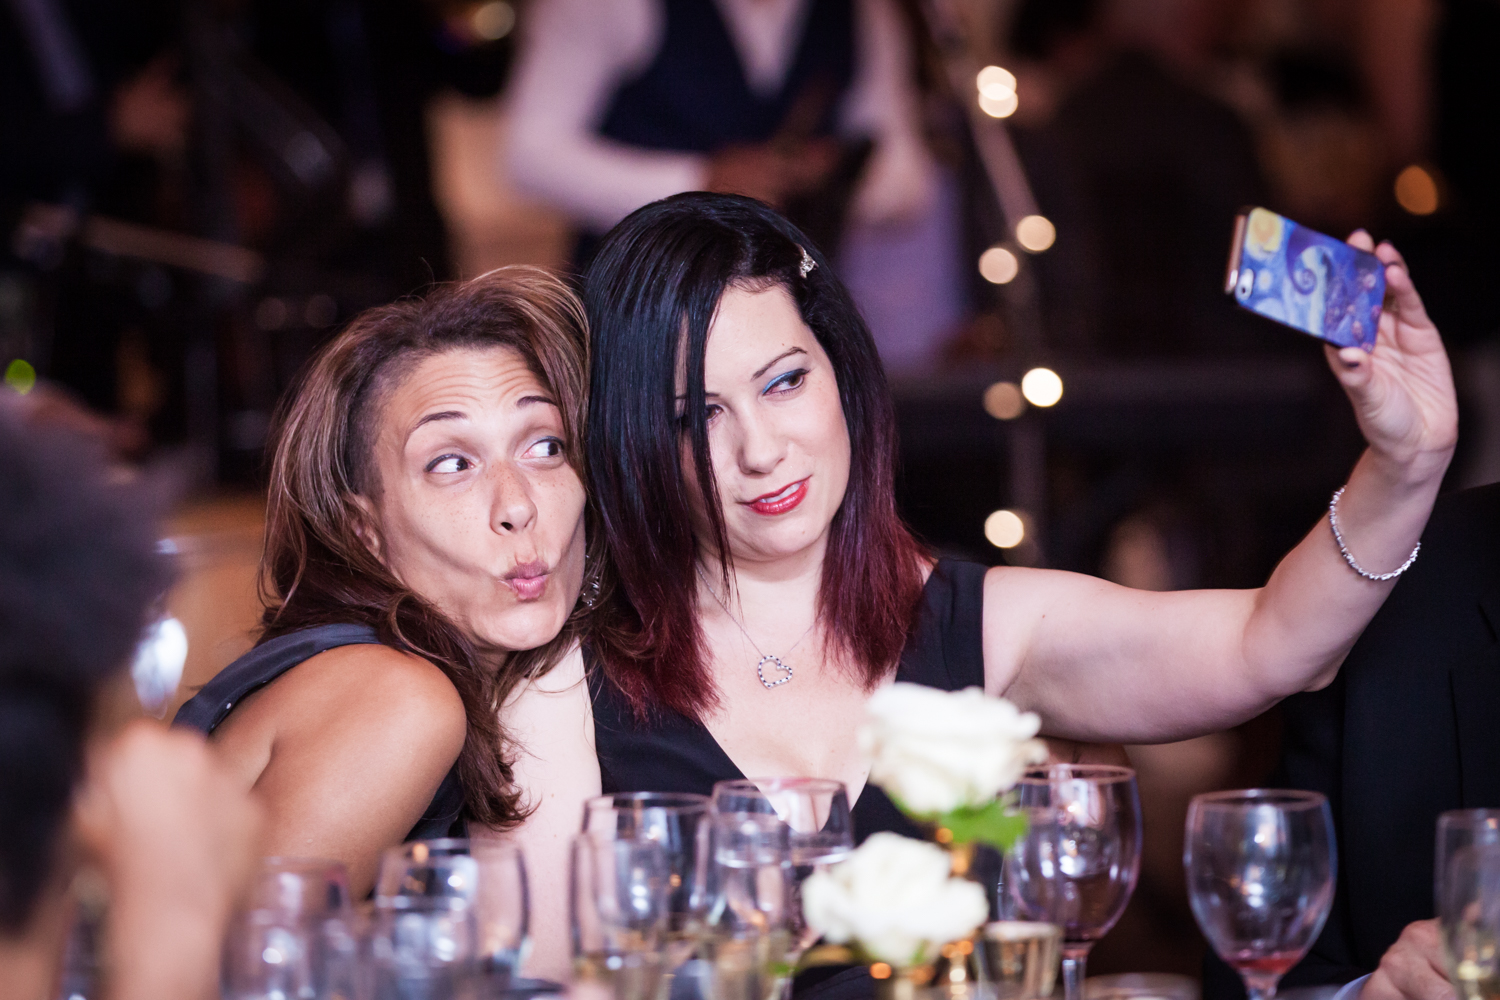 India House wedding photos of two female guests taking a selfie at a table